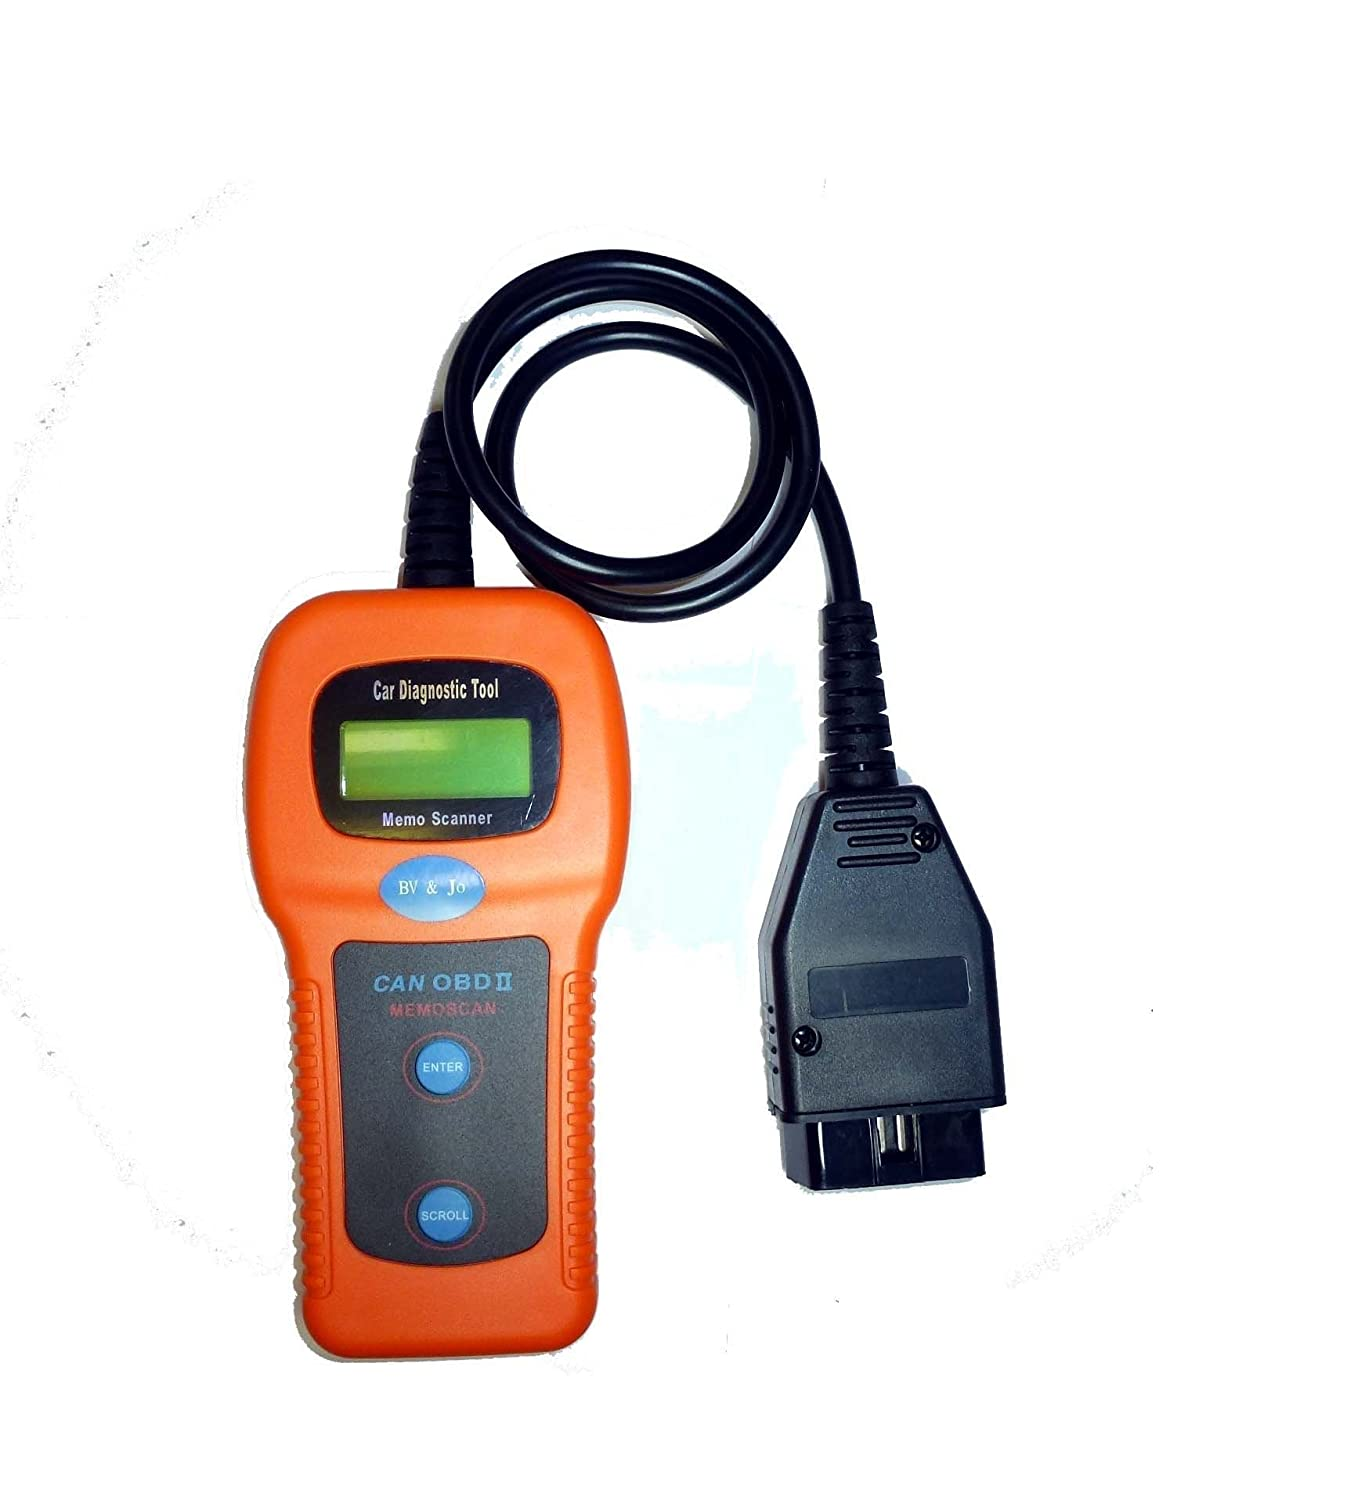 U281 OBD-2 CAN-BUS CODE SCANNER for VW/AUDI/SEAT/SKODA CAR: Amazon.co.uk:  Car & Motorbike